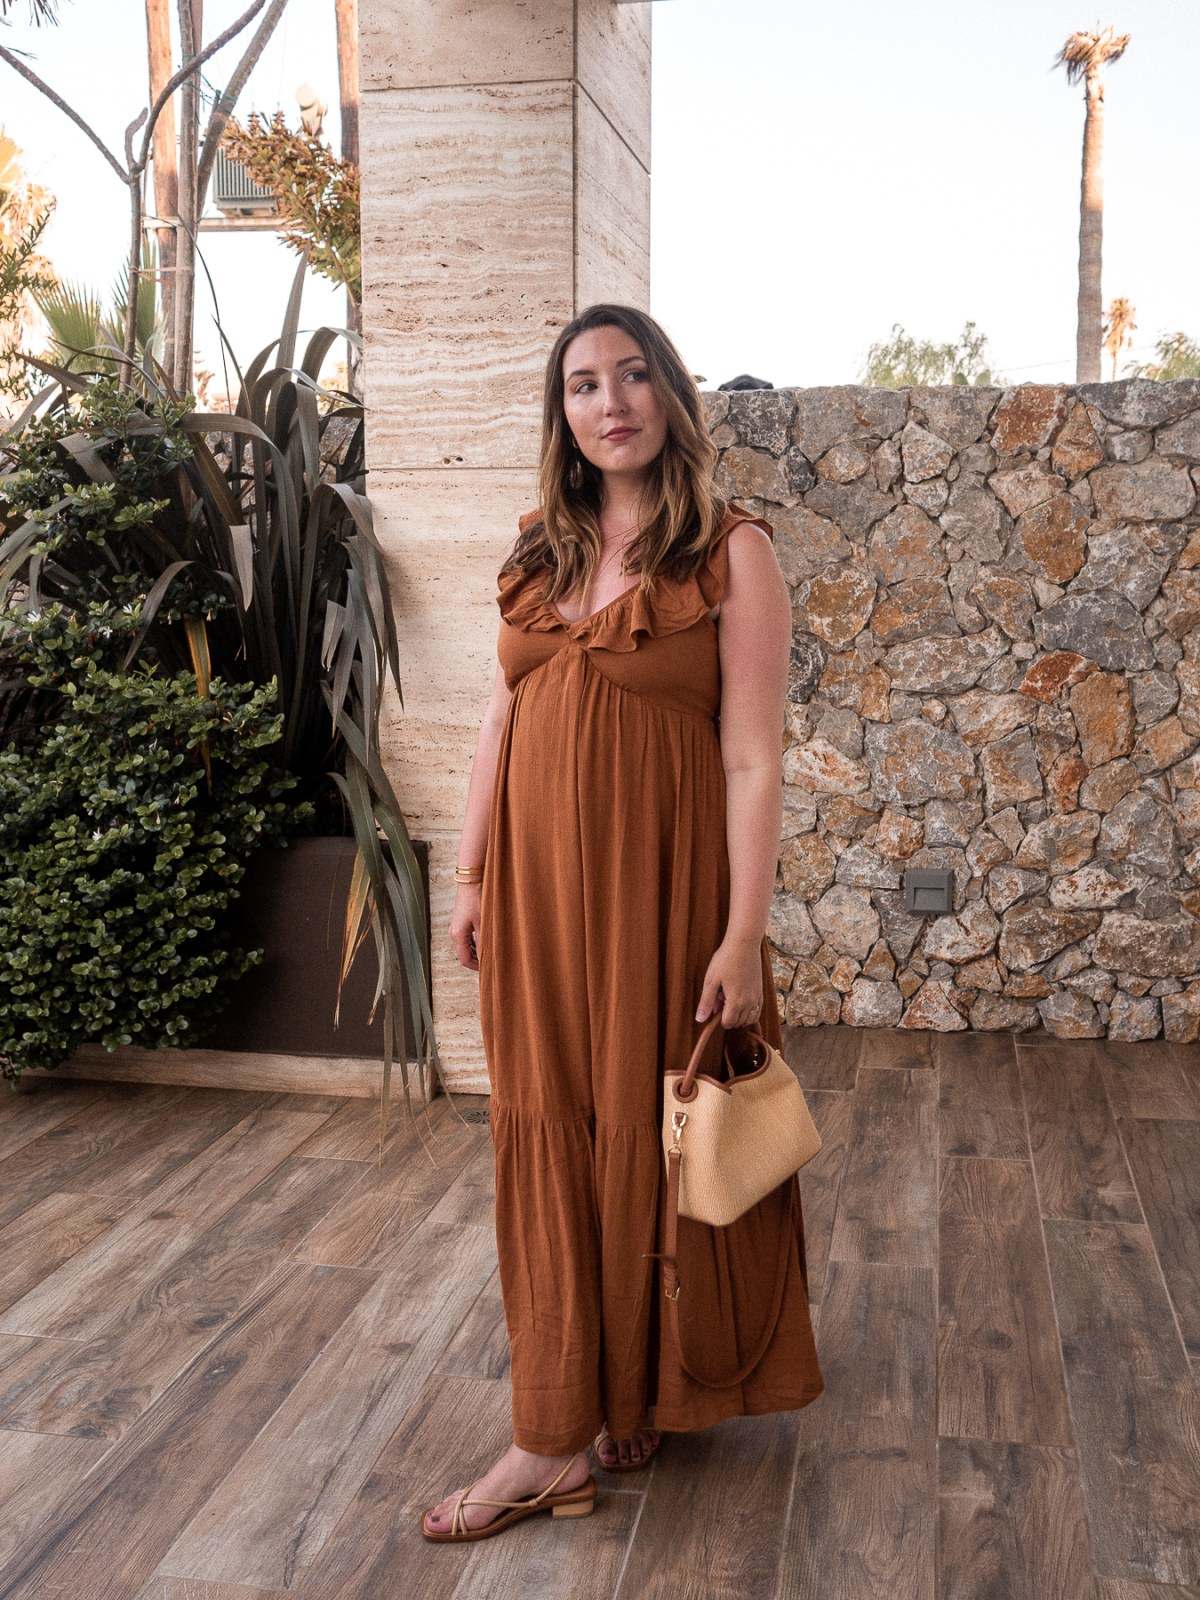 Packing for a Greece babymoon, featuring Warehouse amber ruffle dress, Elleme Baozi tote, and Loq strappy sandals   W&S